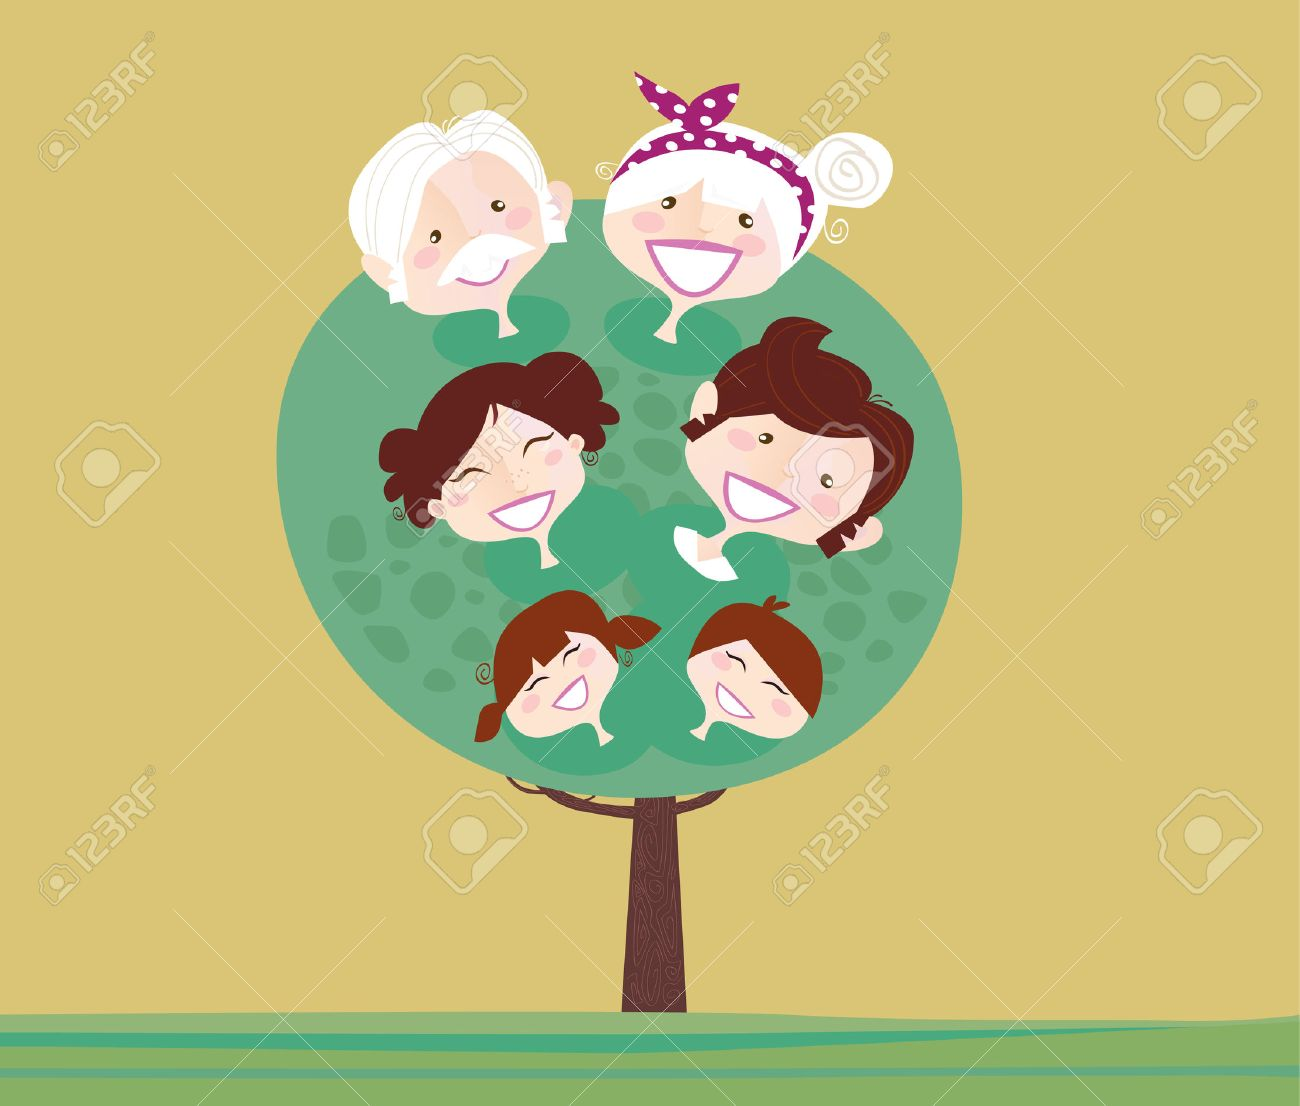 Larger preview vector clip art of a happy yellow coffee cup character - Old Age Big Family Generation Tree Family Relationship Tree Grandmother Grandfather Mother